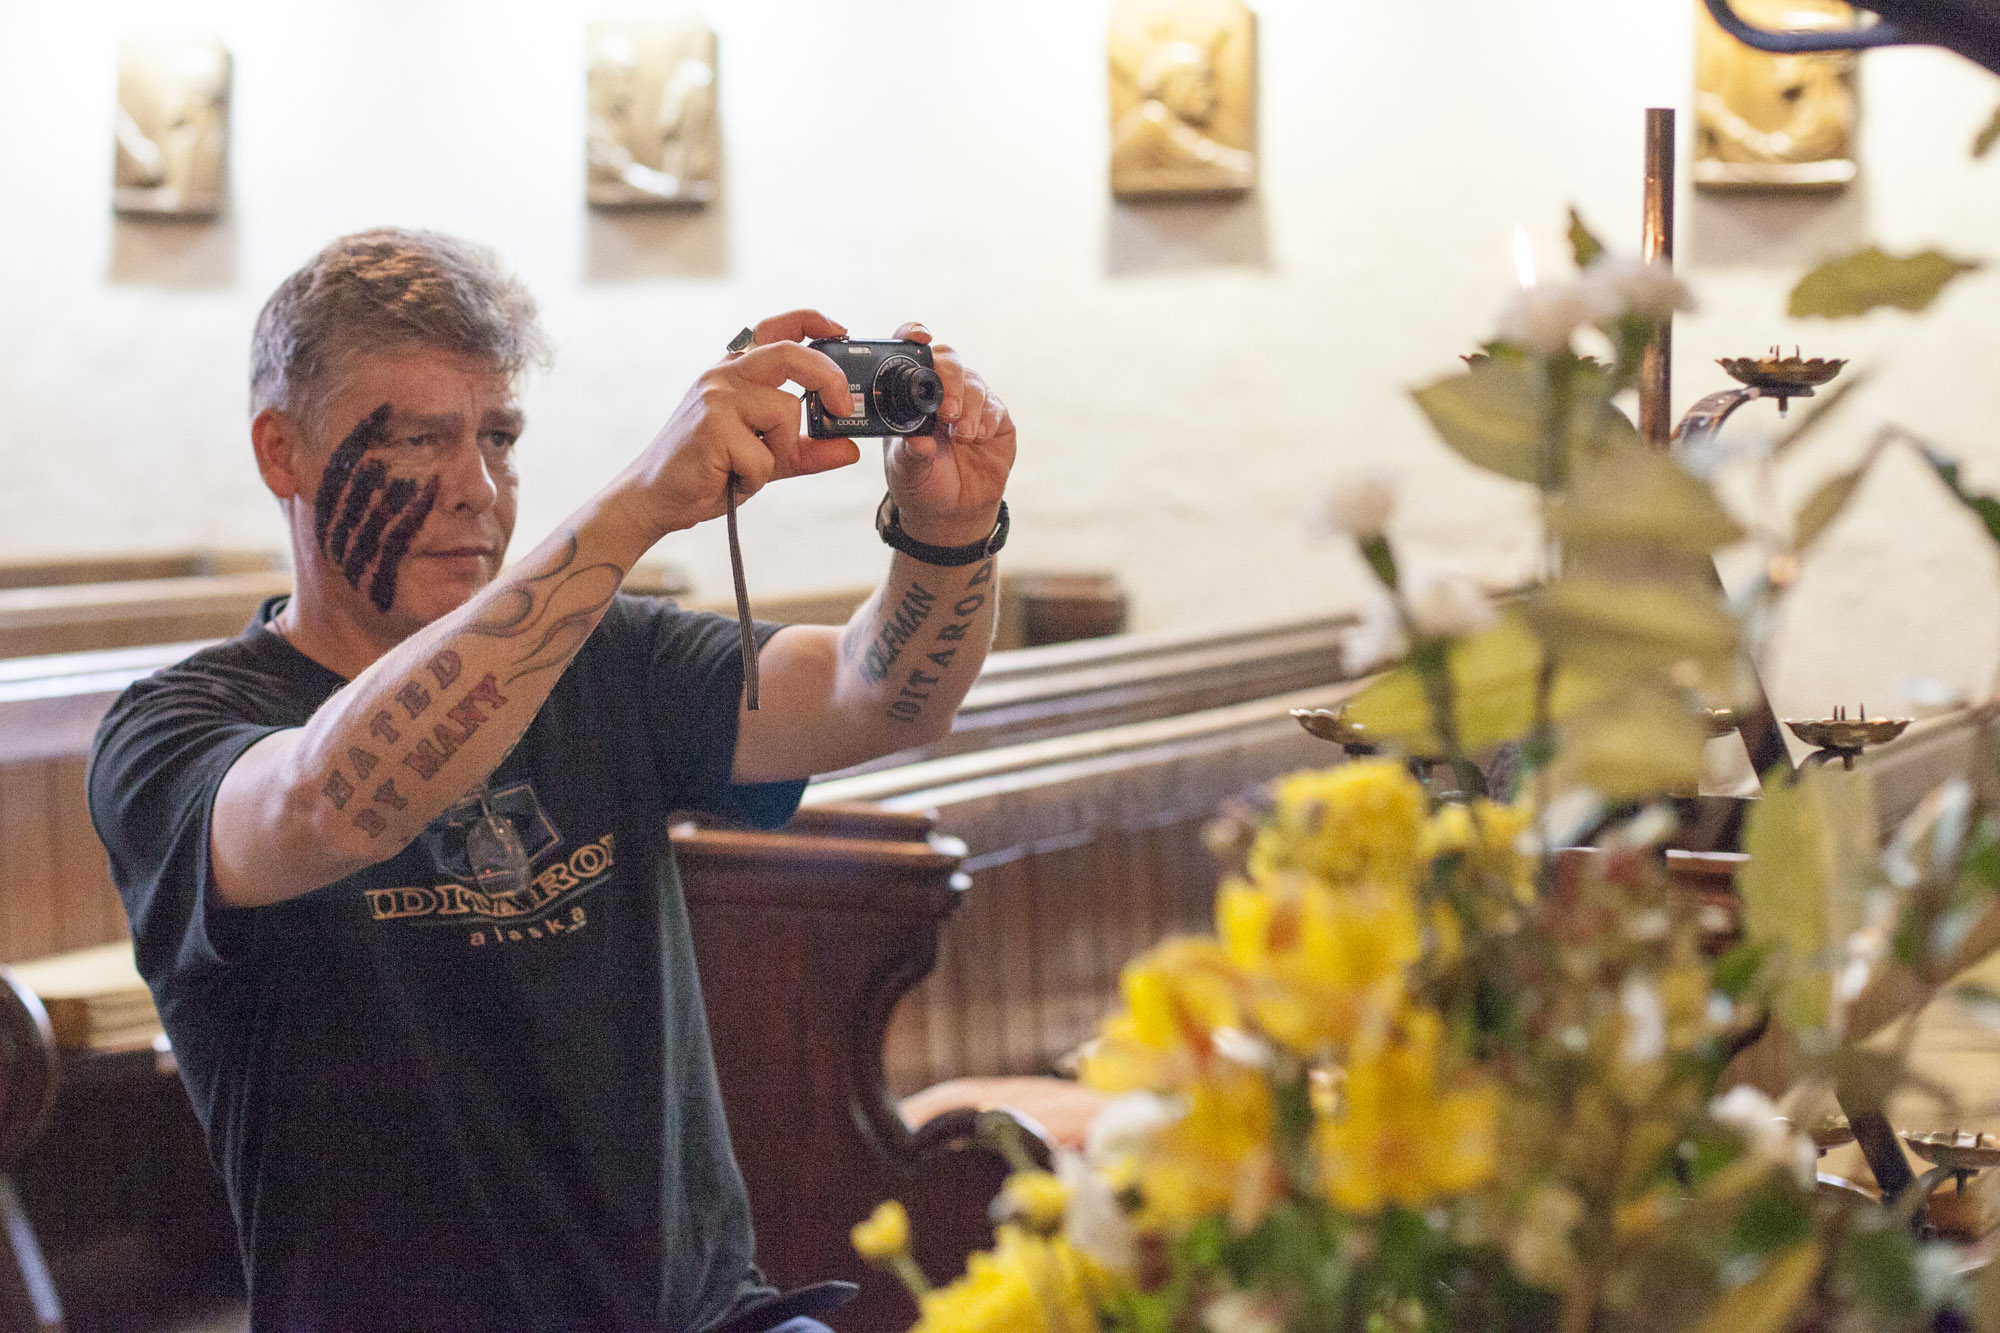 Man taking photo of flowers during a mindfulness photography workshop for staff at Crisis Oxford